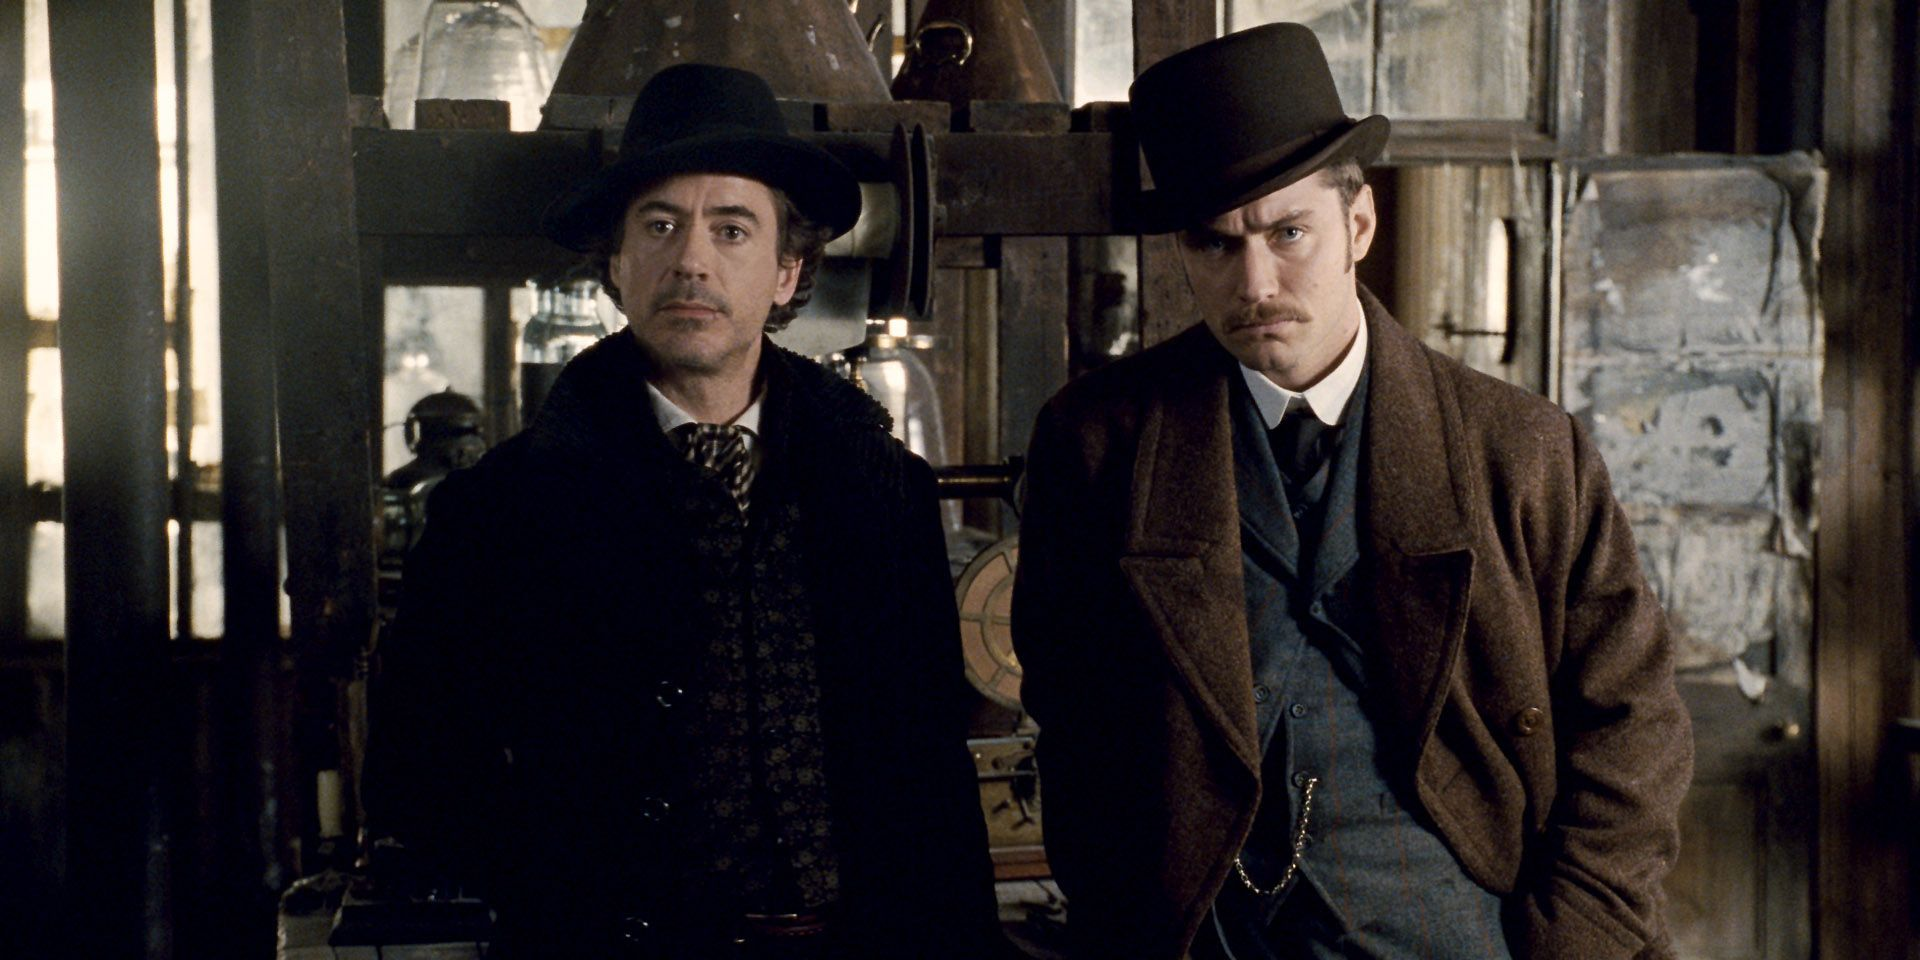 Sherlock Holmes 3 Reportedly Takes Place in Old West San Francisco